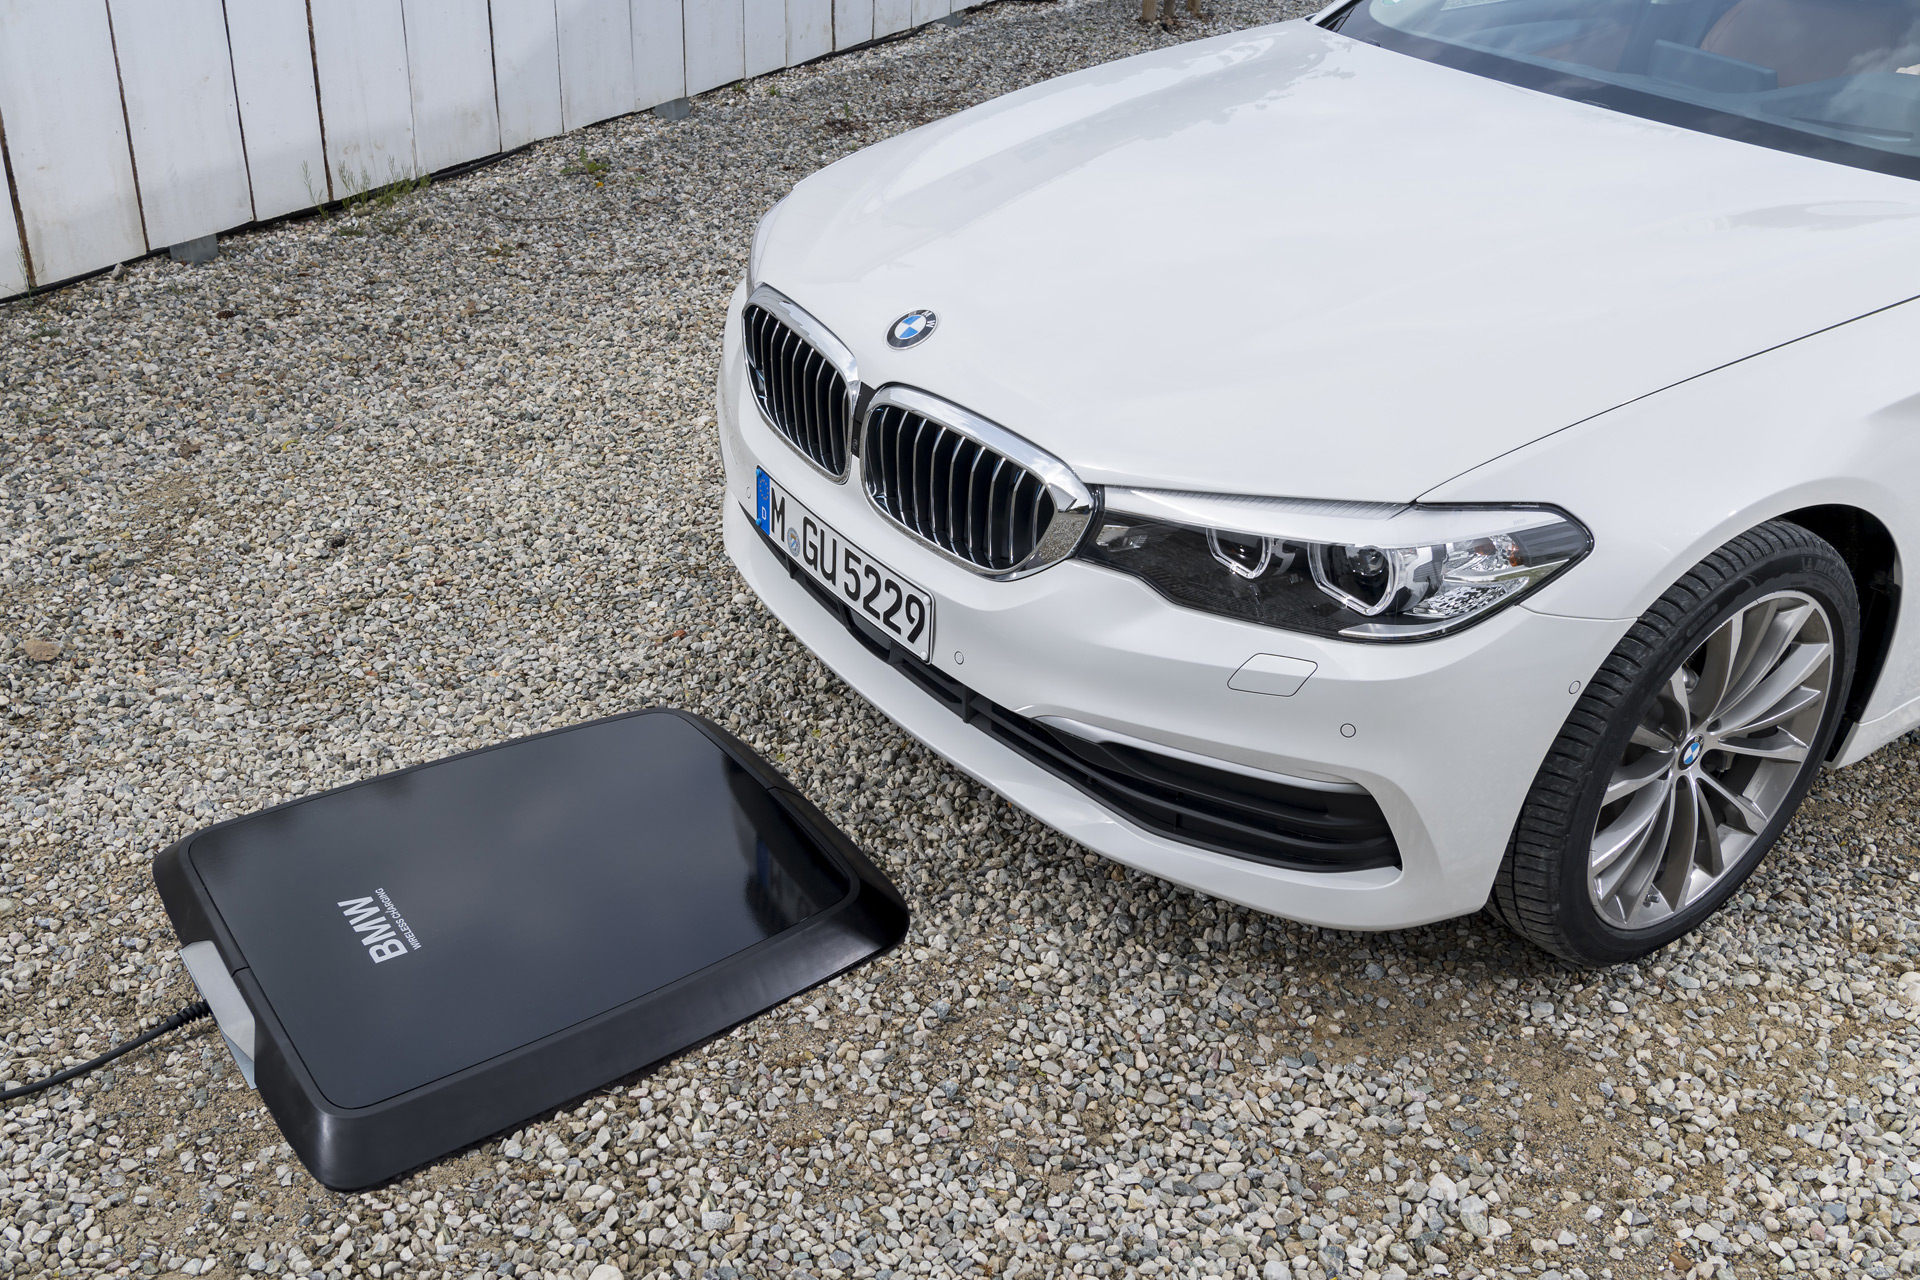 Do you look forward to wireless charging at home? Take our Twitter poll